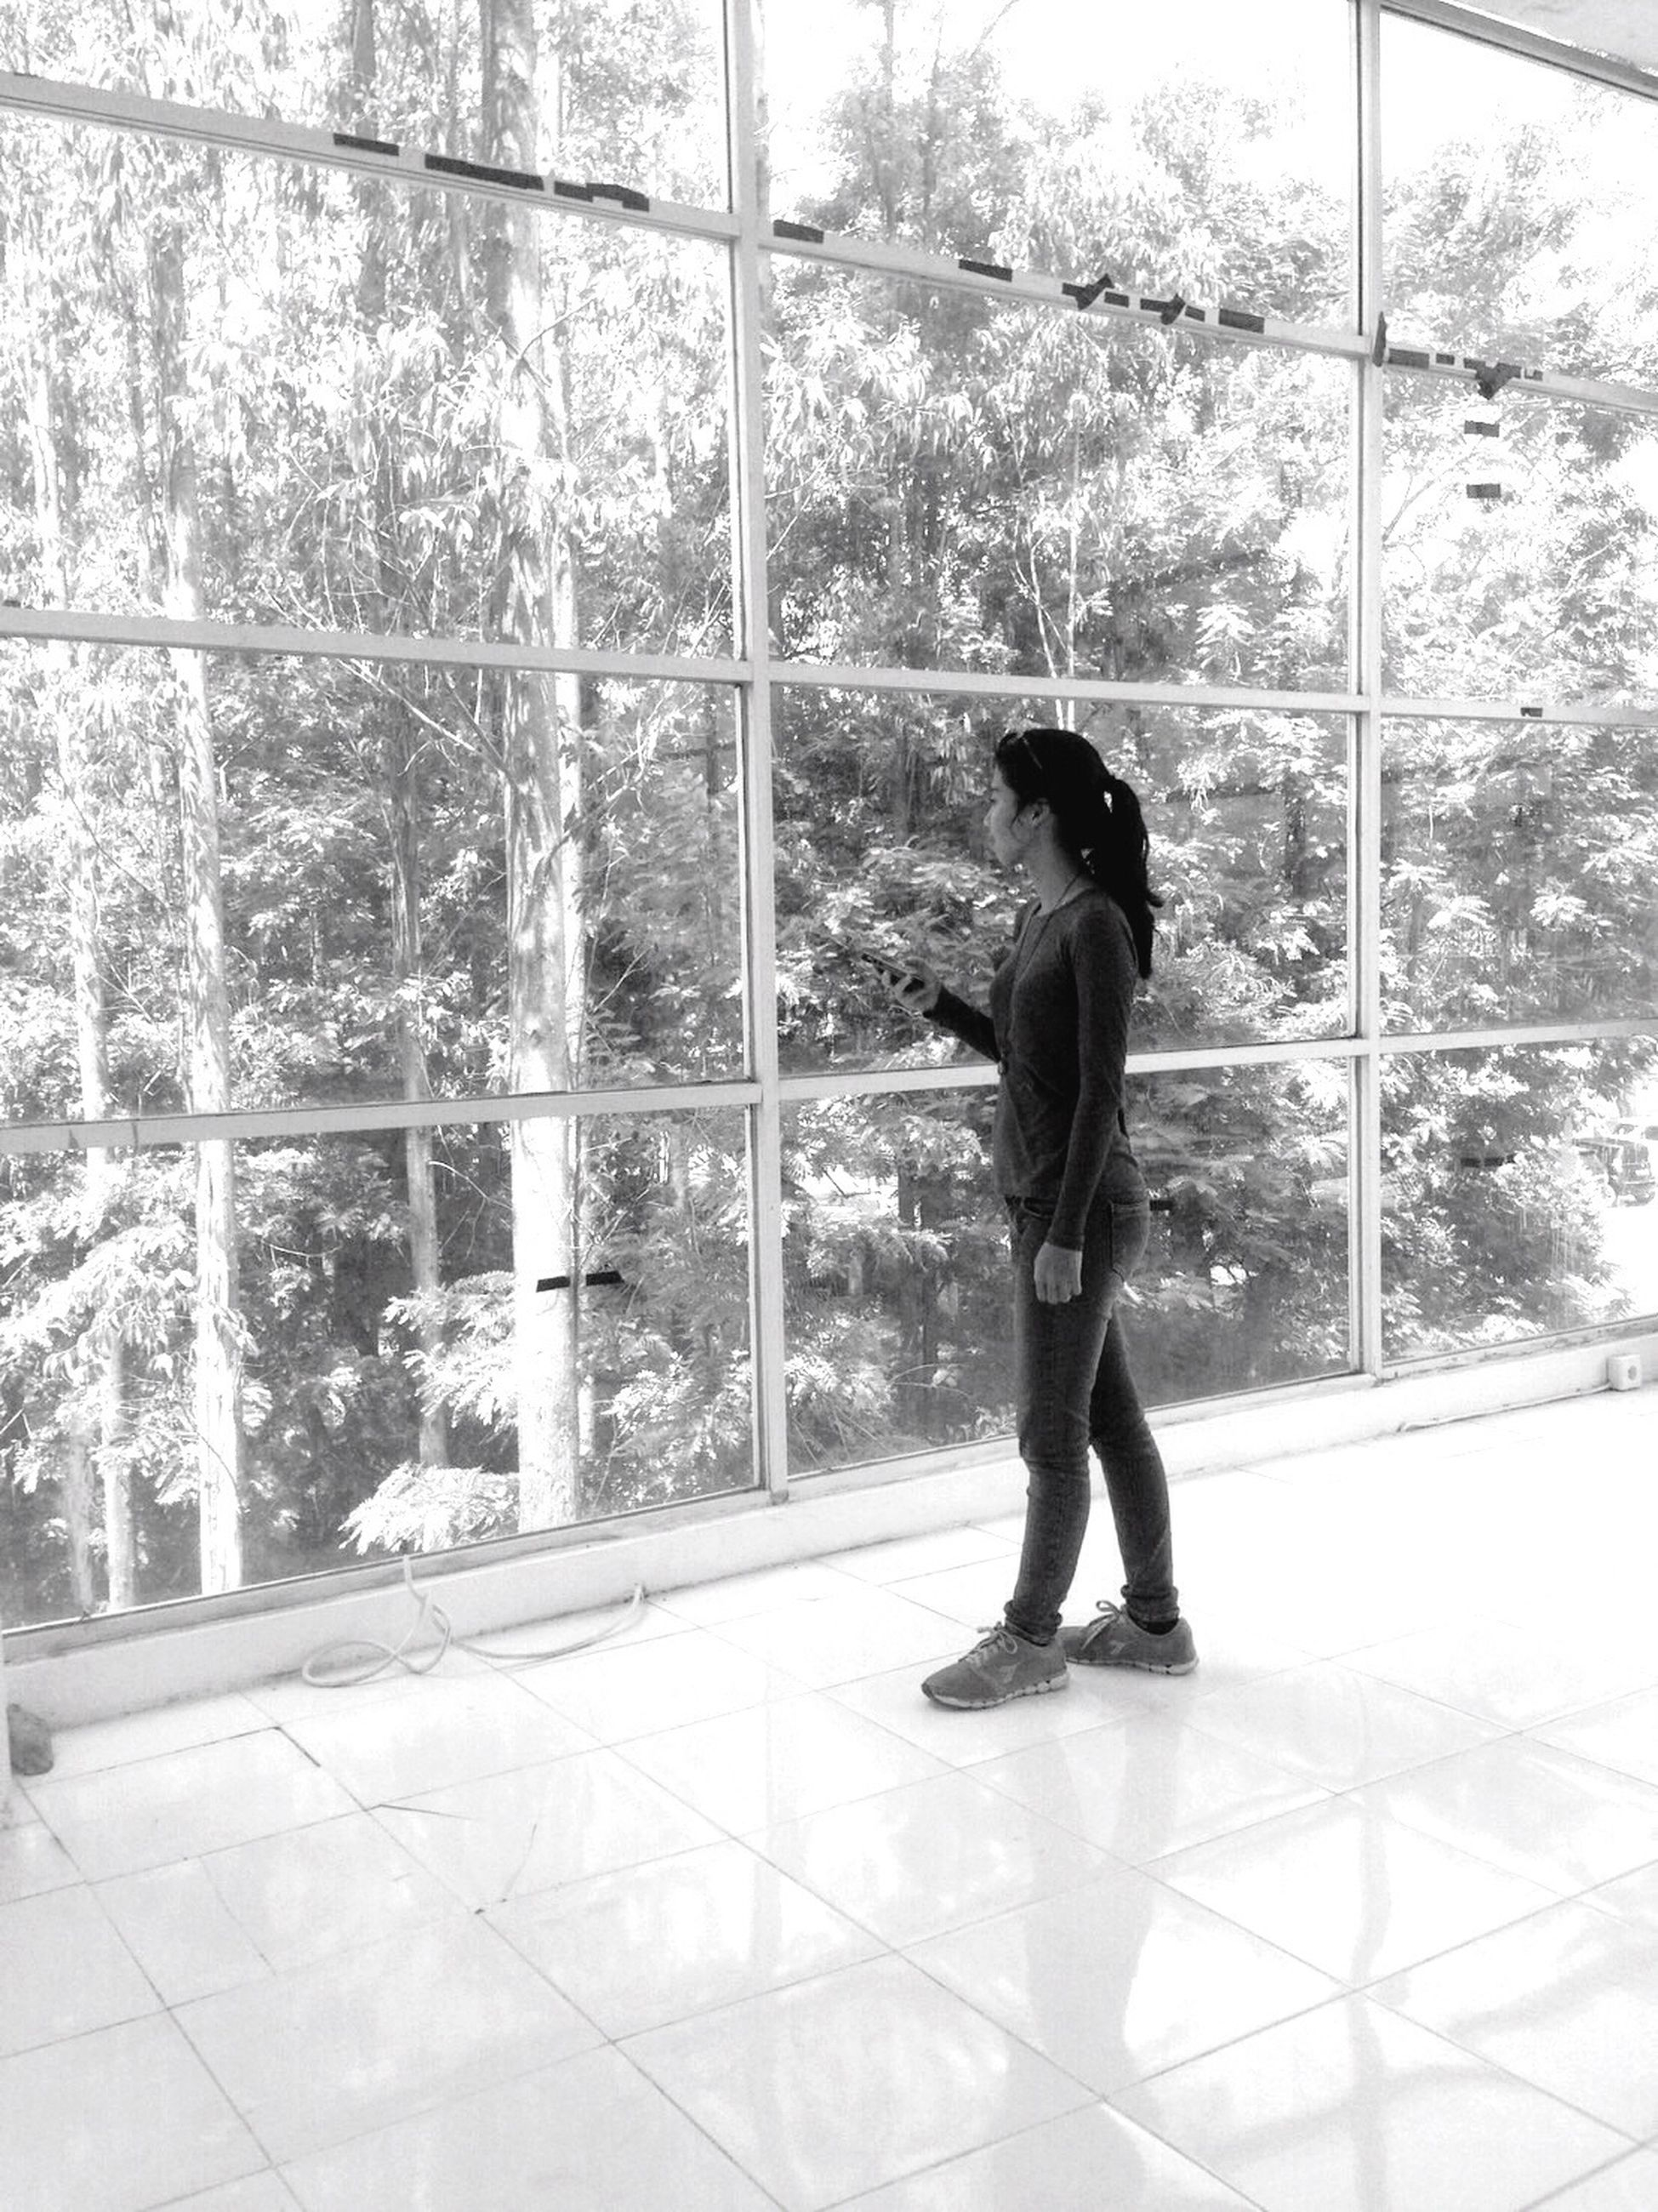 indoors, full length, lifestyles, standing, window, glass - material, casual clothing, leisure activity, transparent, built structure, architecture, young adult, tiled floor, reflection, wall - building feature, person, day, young women